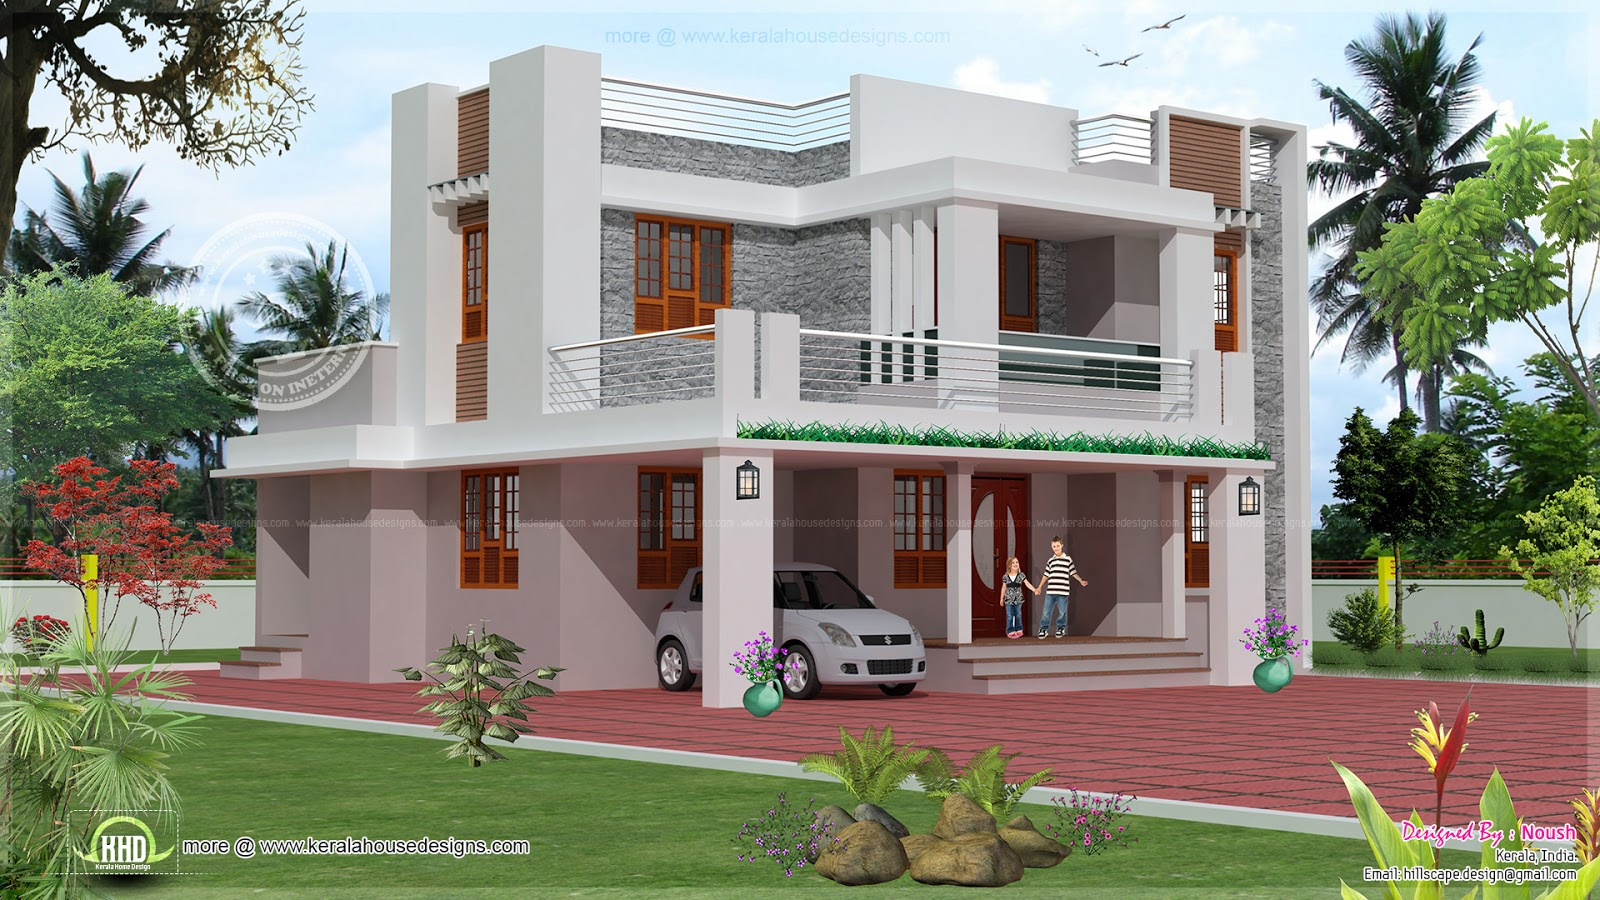 4 bedroom 2 story house exterior design house design plans for Two story home designs